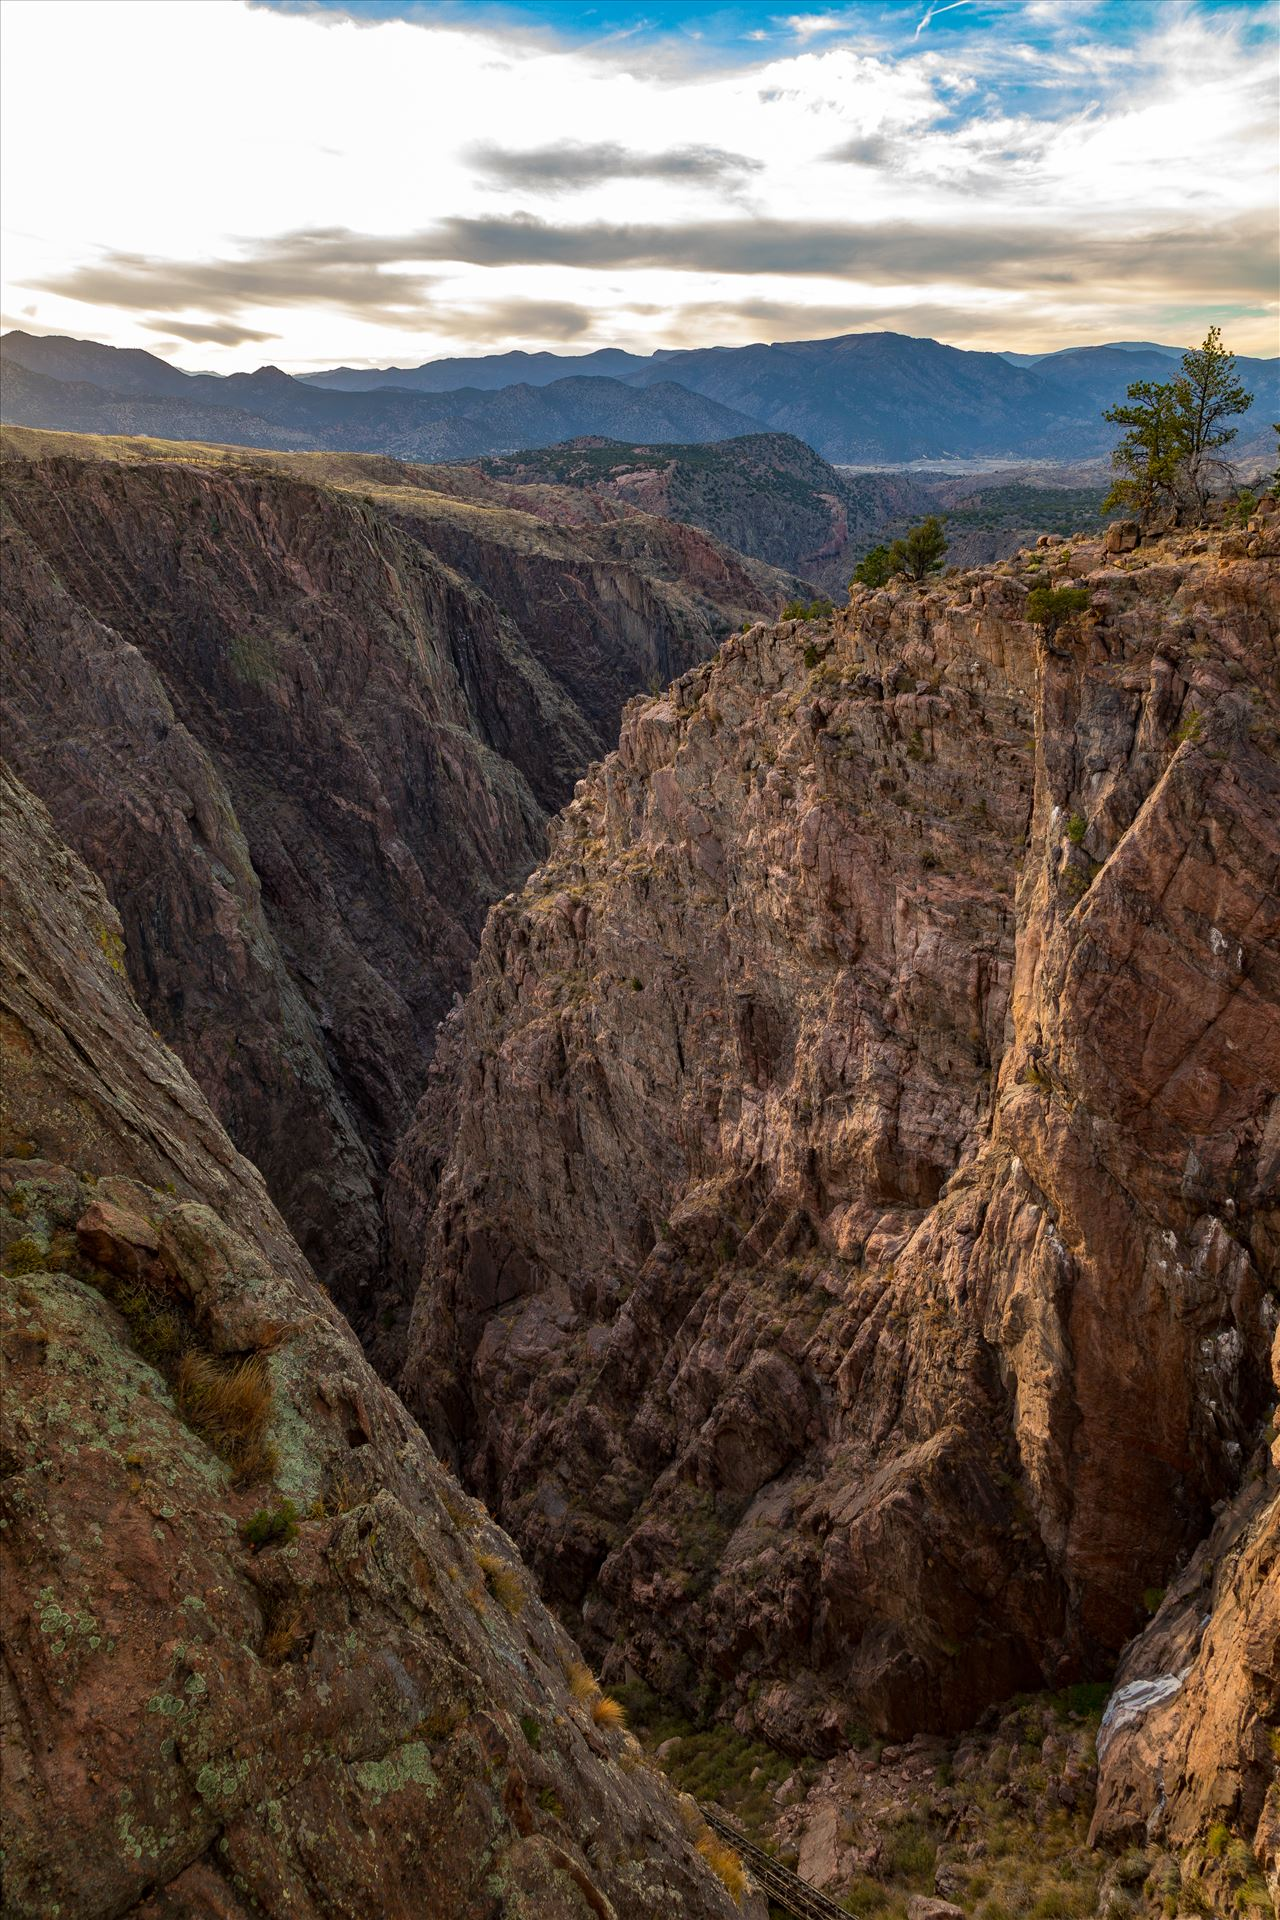 Royal Gorge No 1 - The view of the Royal Gorge, in Canon City Colorado. by D Scott Smith